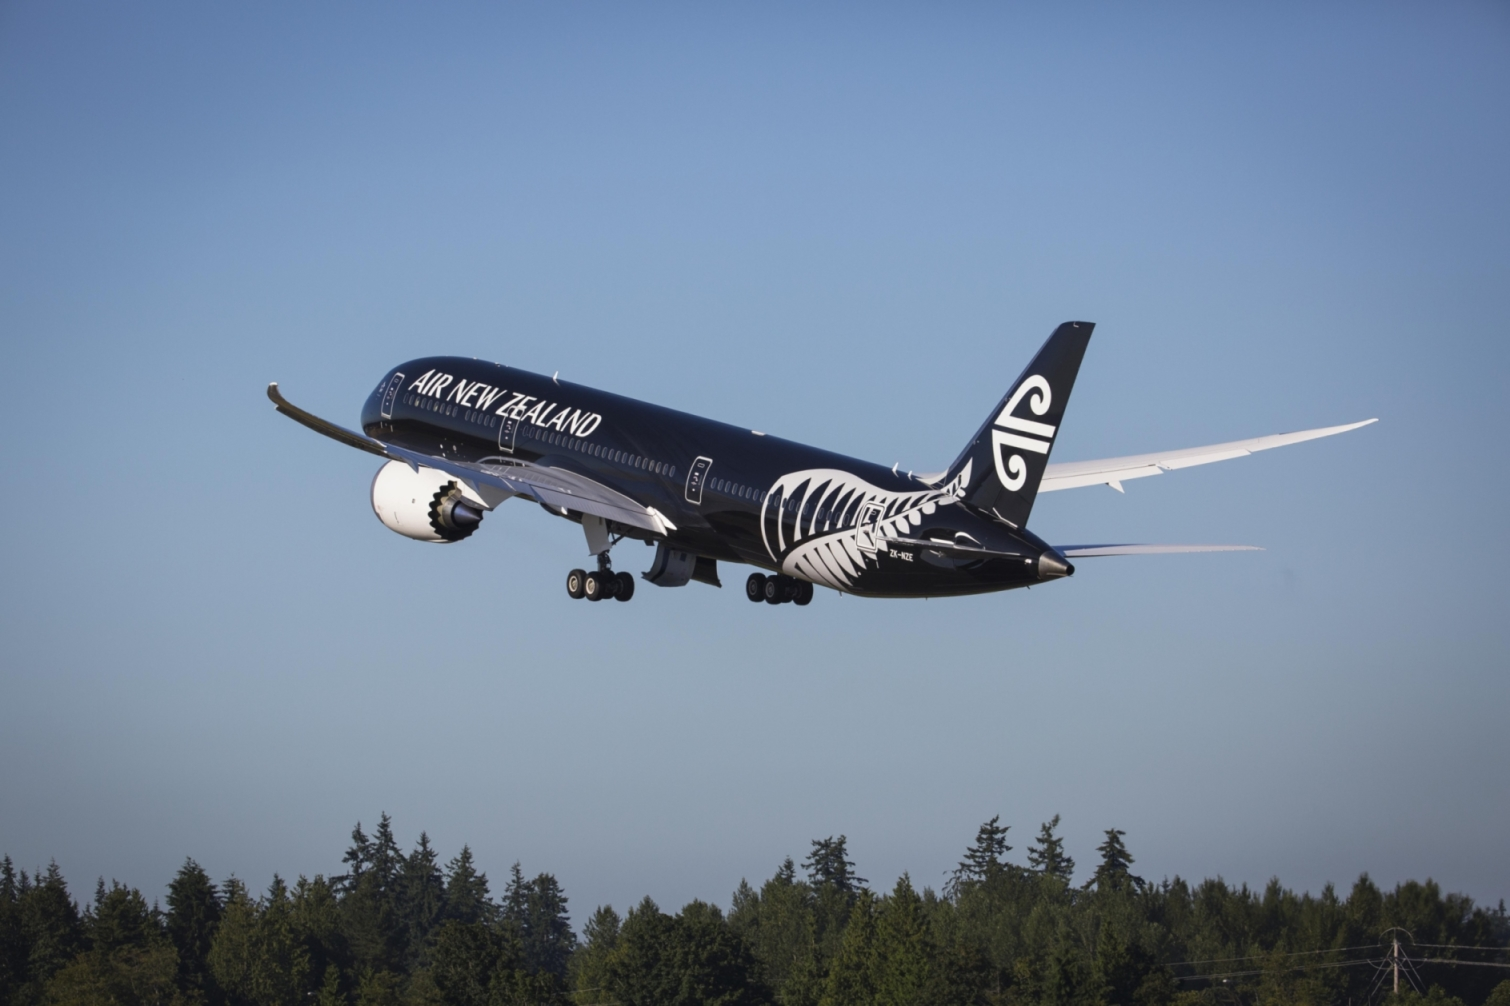 air new zealand continues to operate direct flight to vietnam